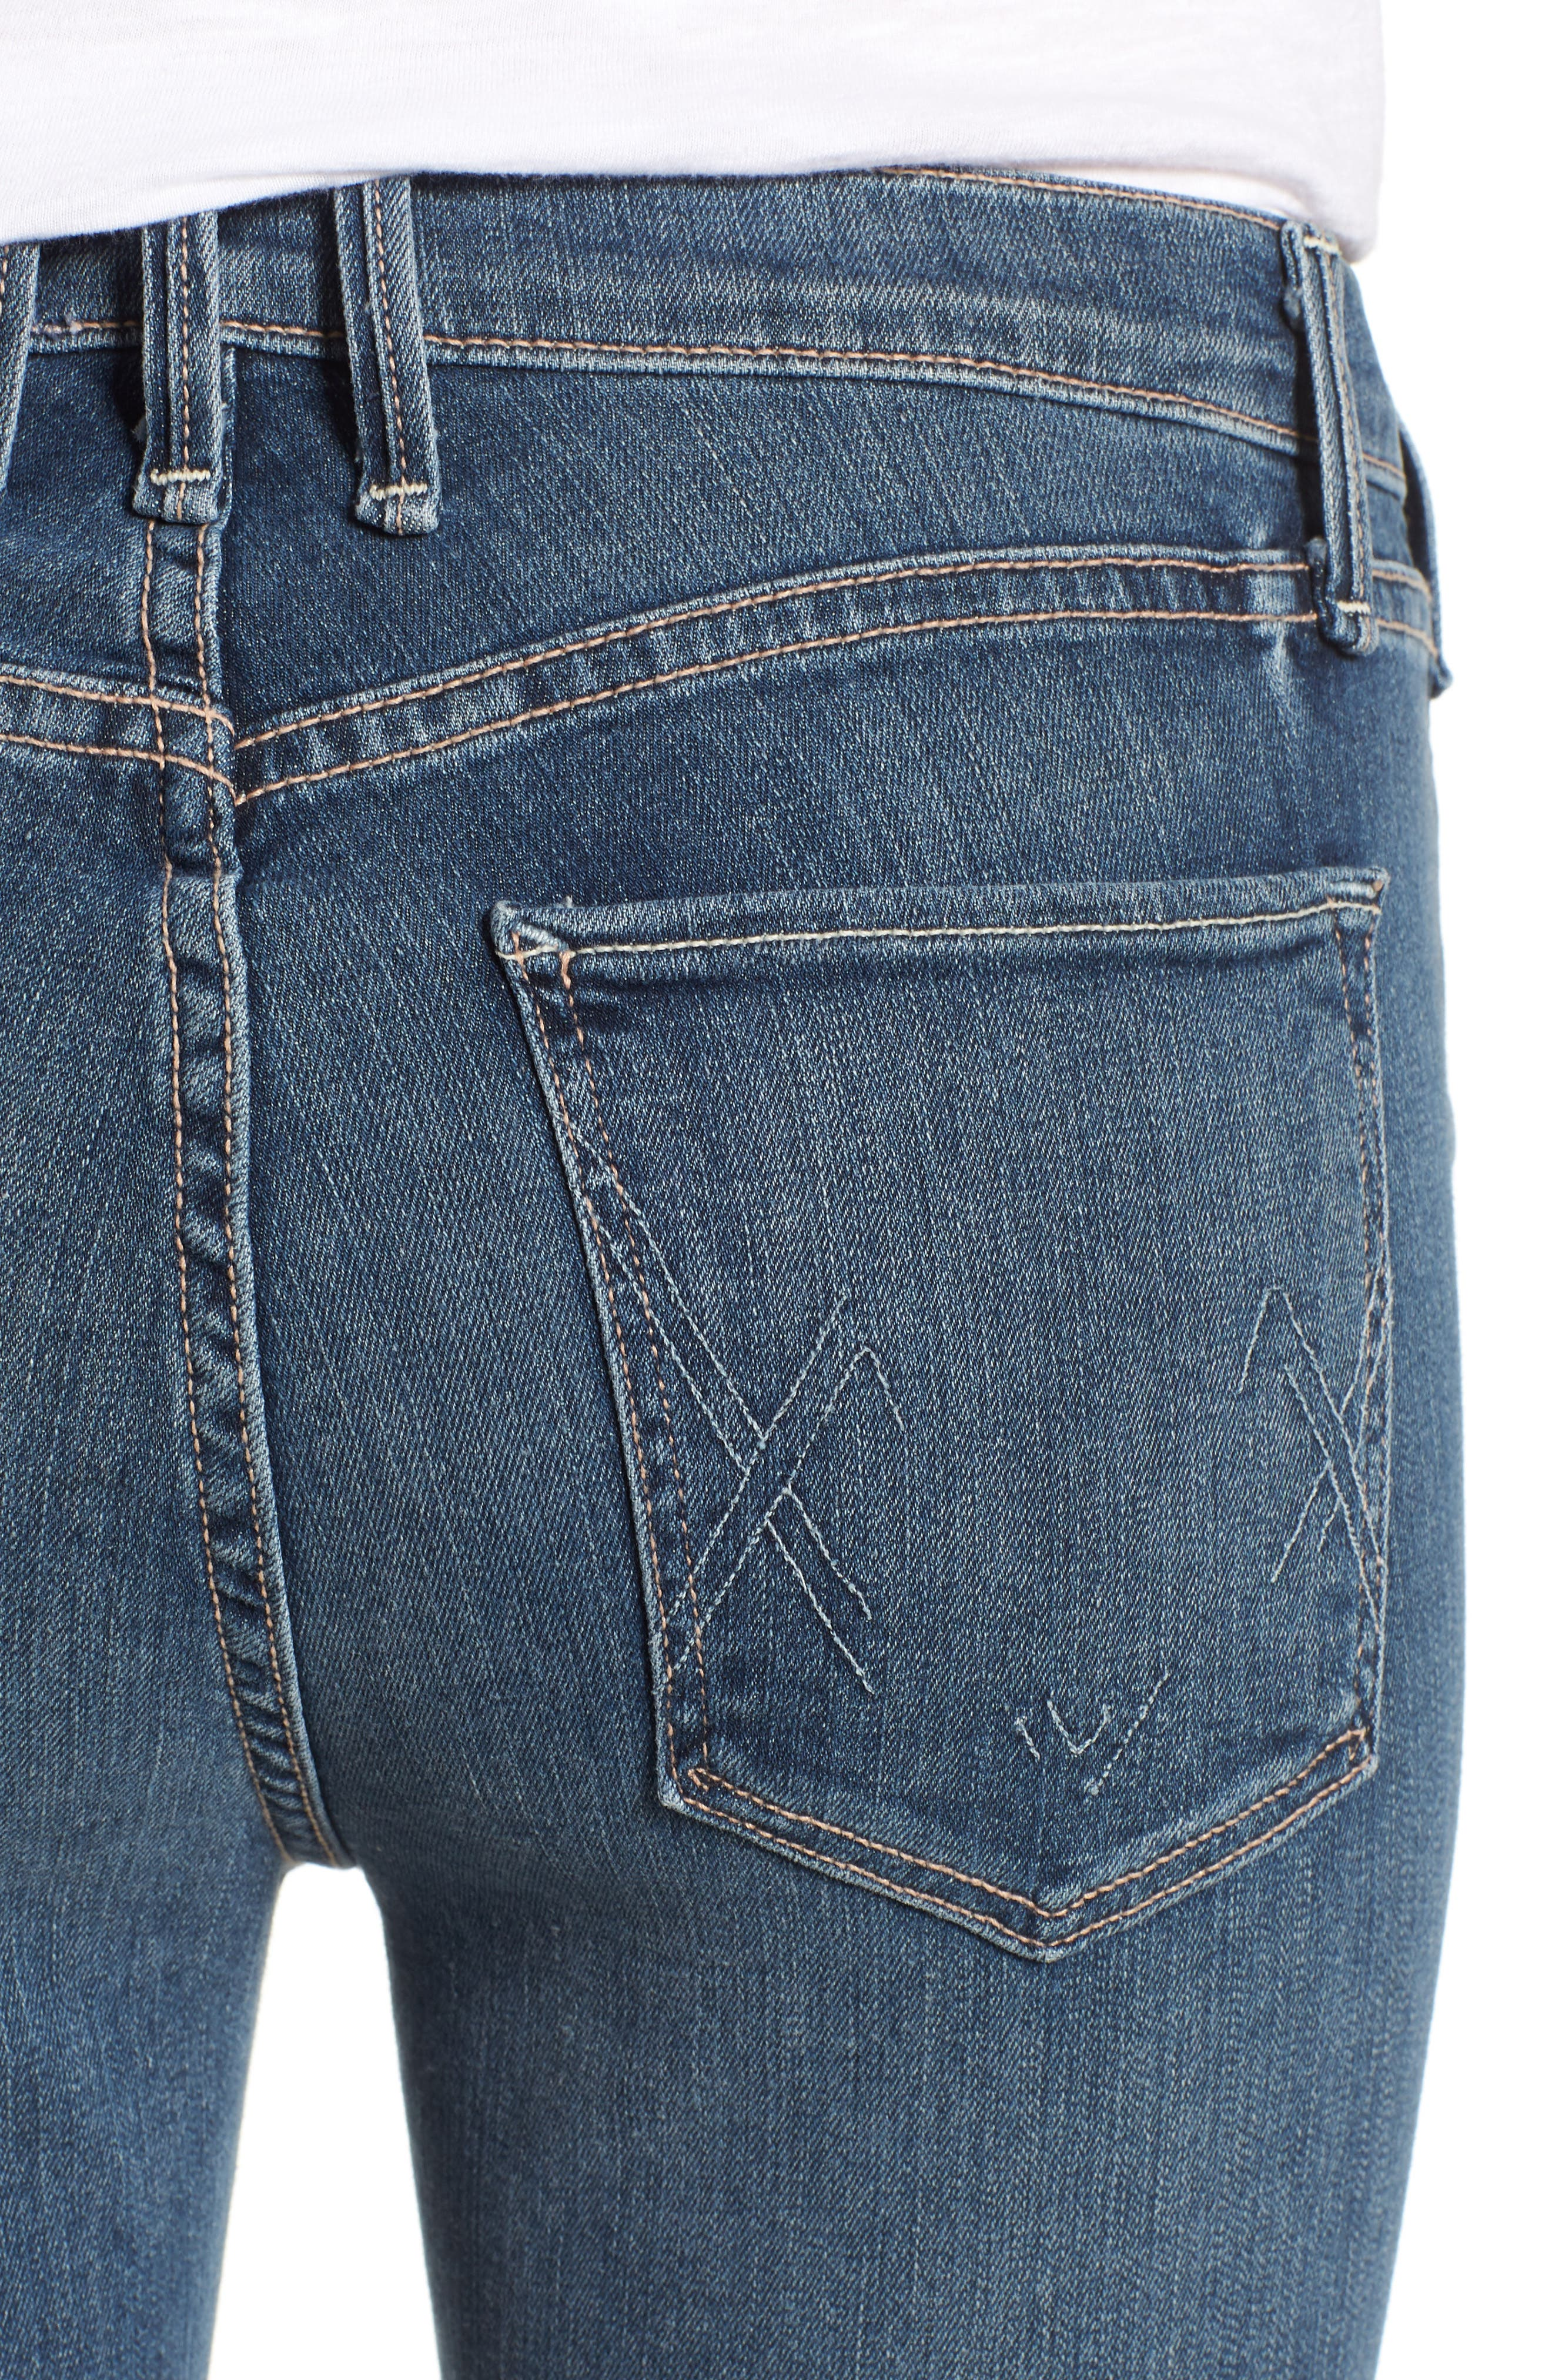 Newton Crop Skinny Jeans,                             Alternate thumbnail 4, color,                             Barthelemy Gardens